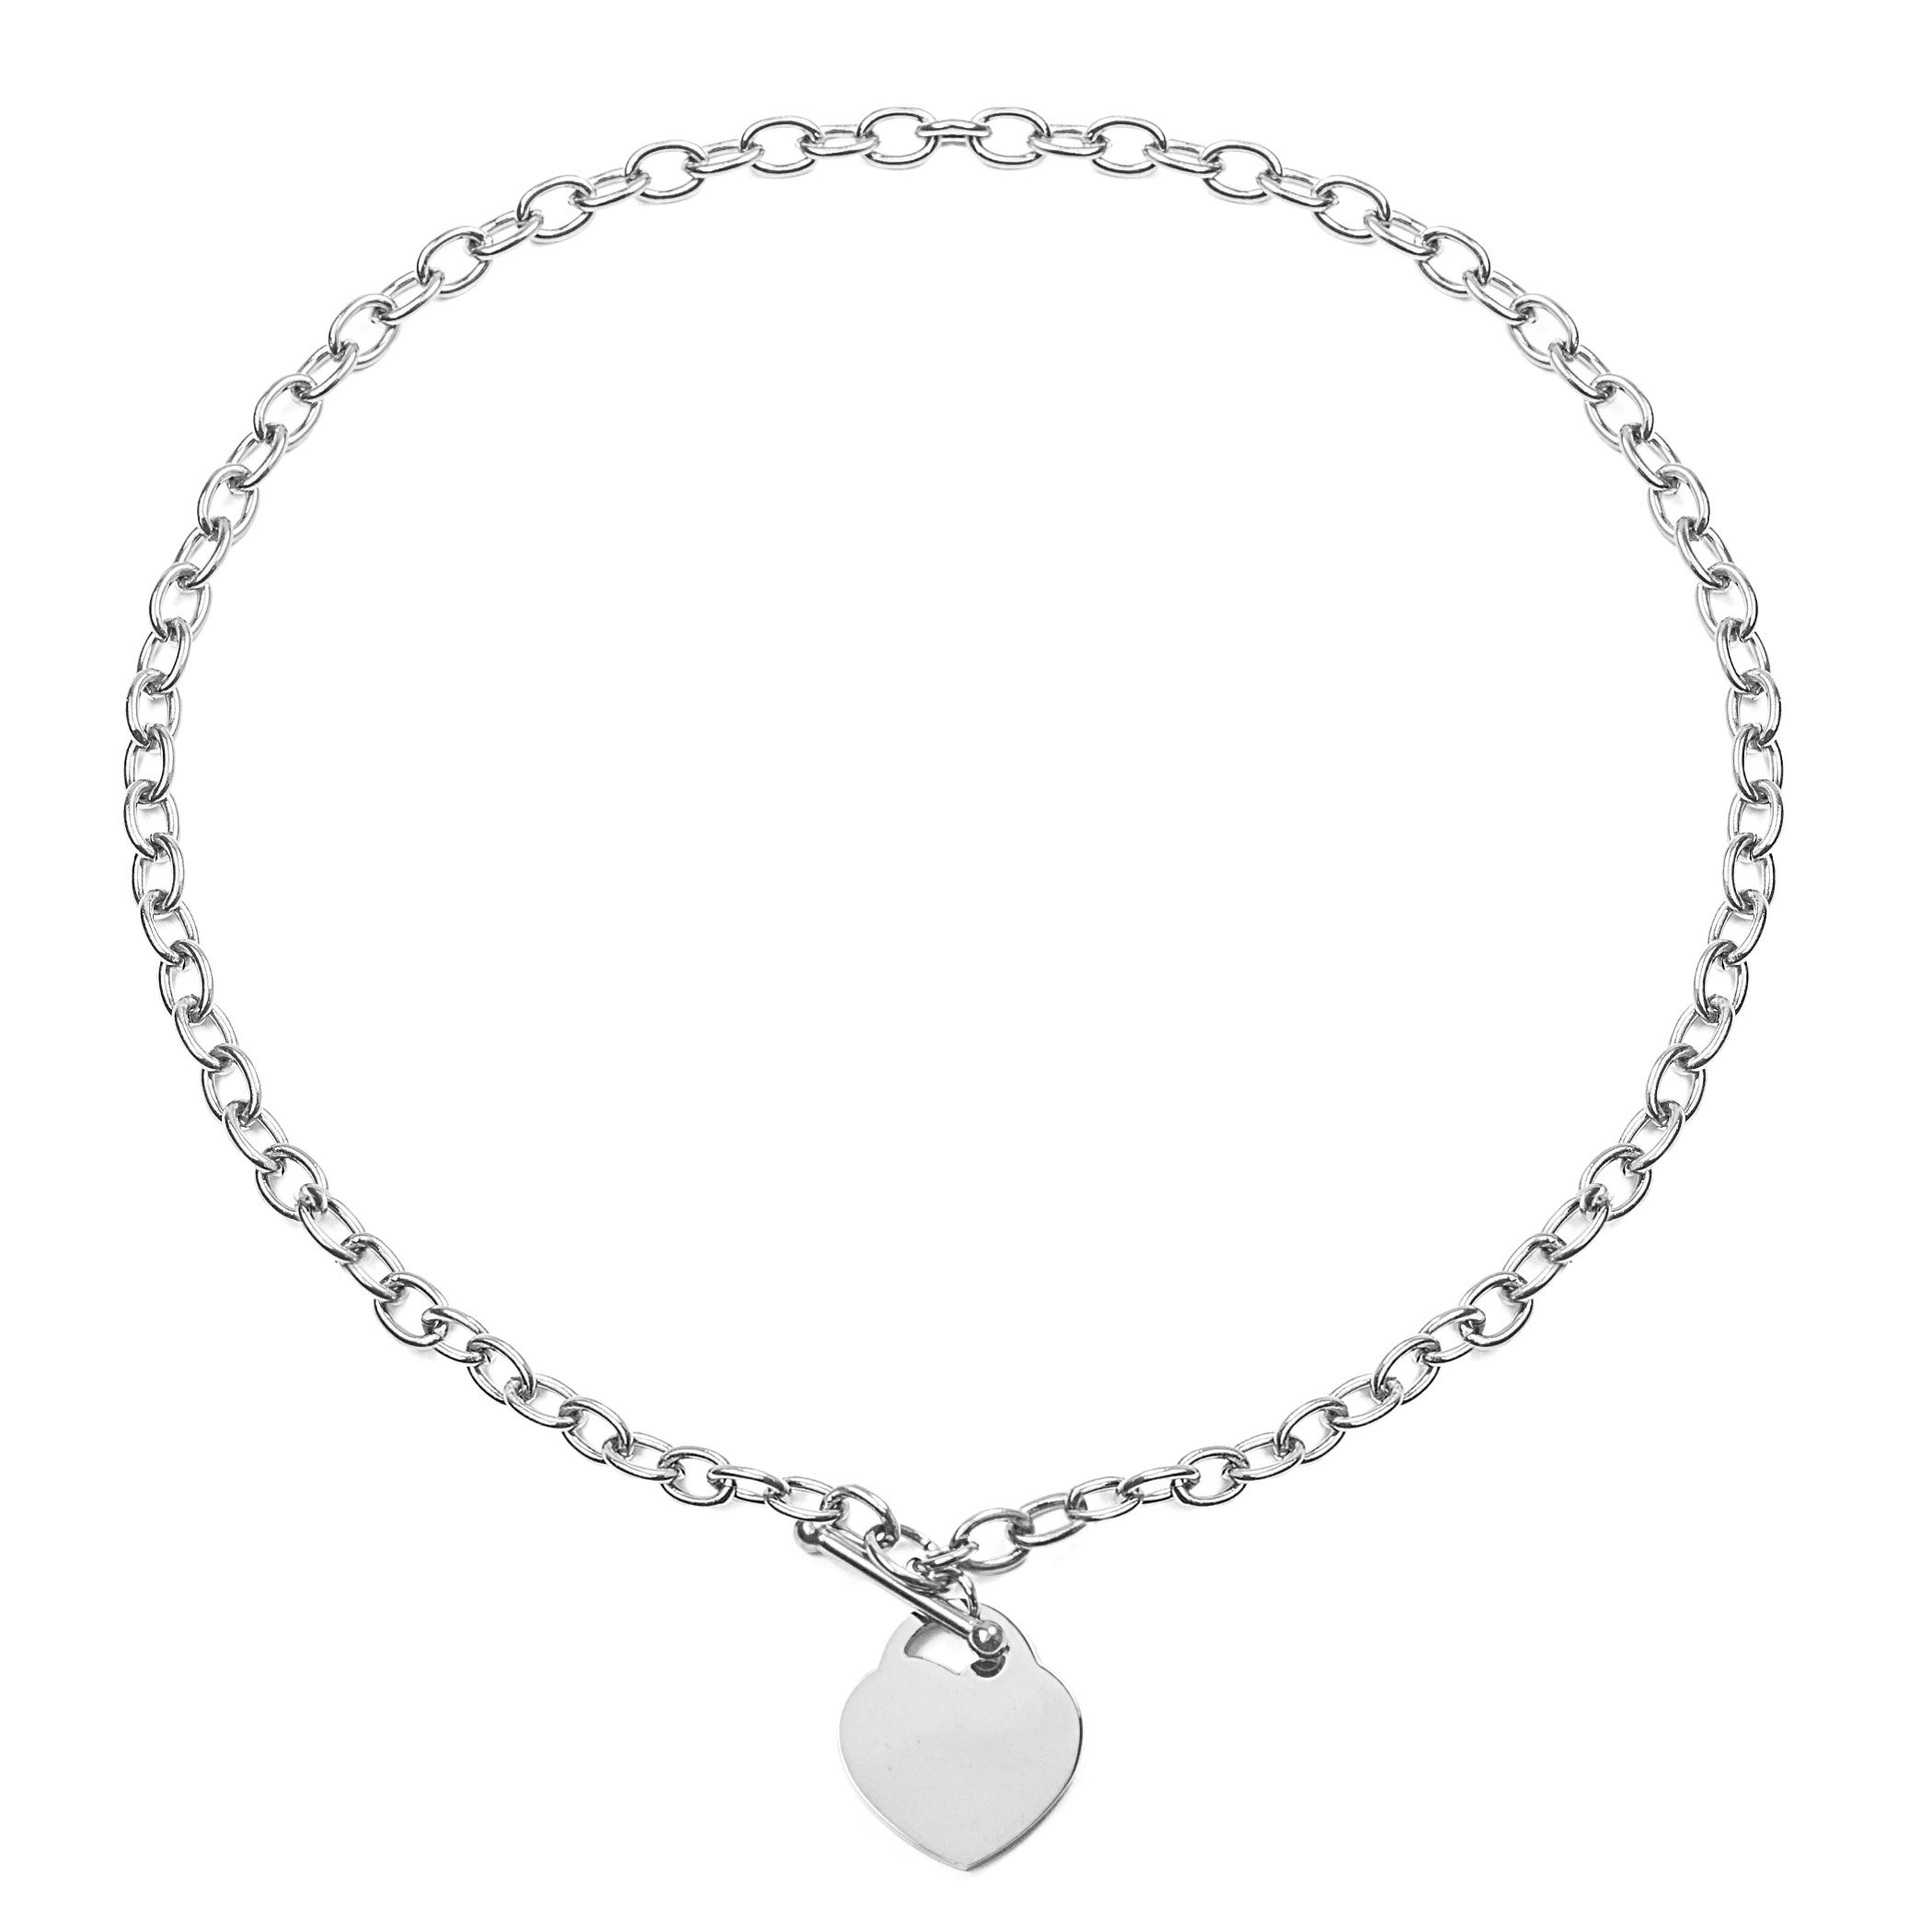 277f582d229 Stainless Steel Heart Charm Toggle Necklace